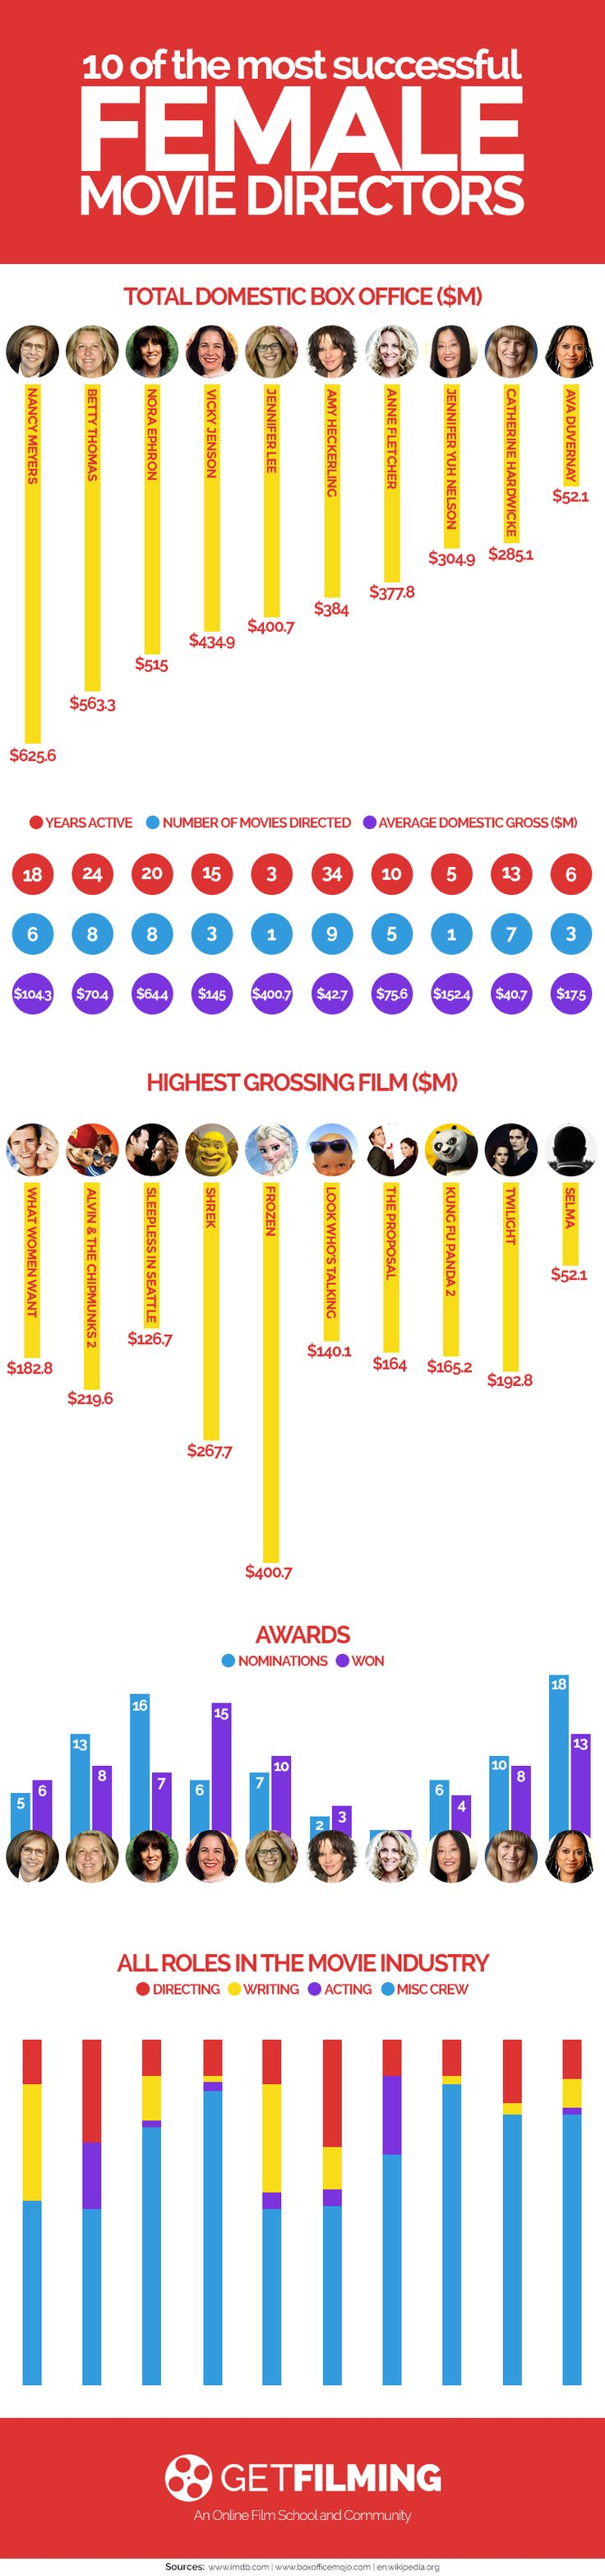 Female Directors in the Film Industry